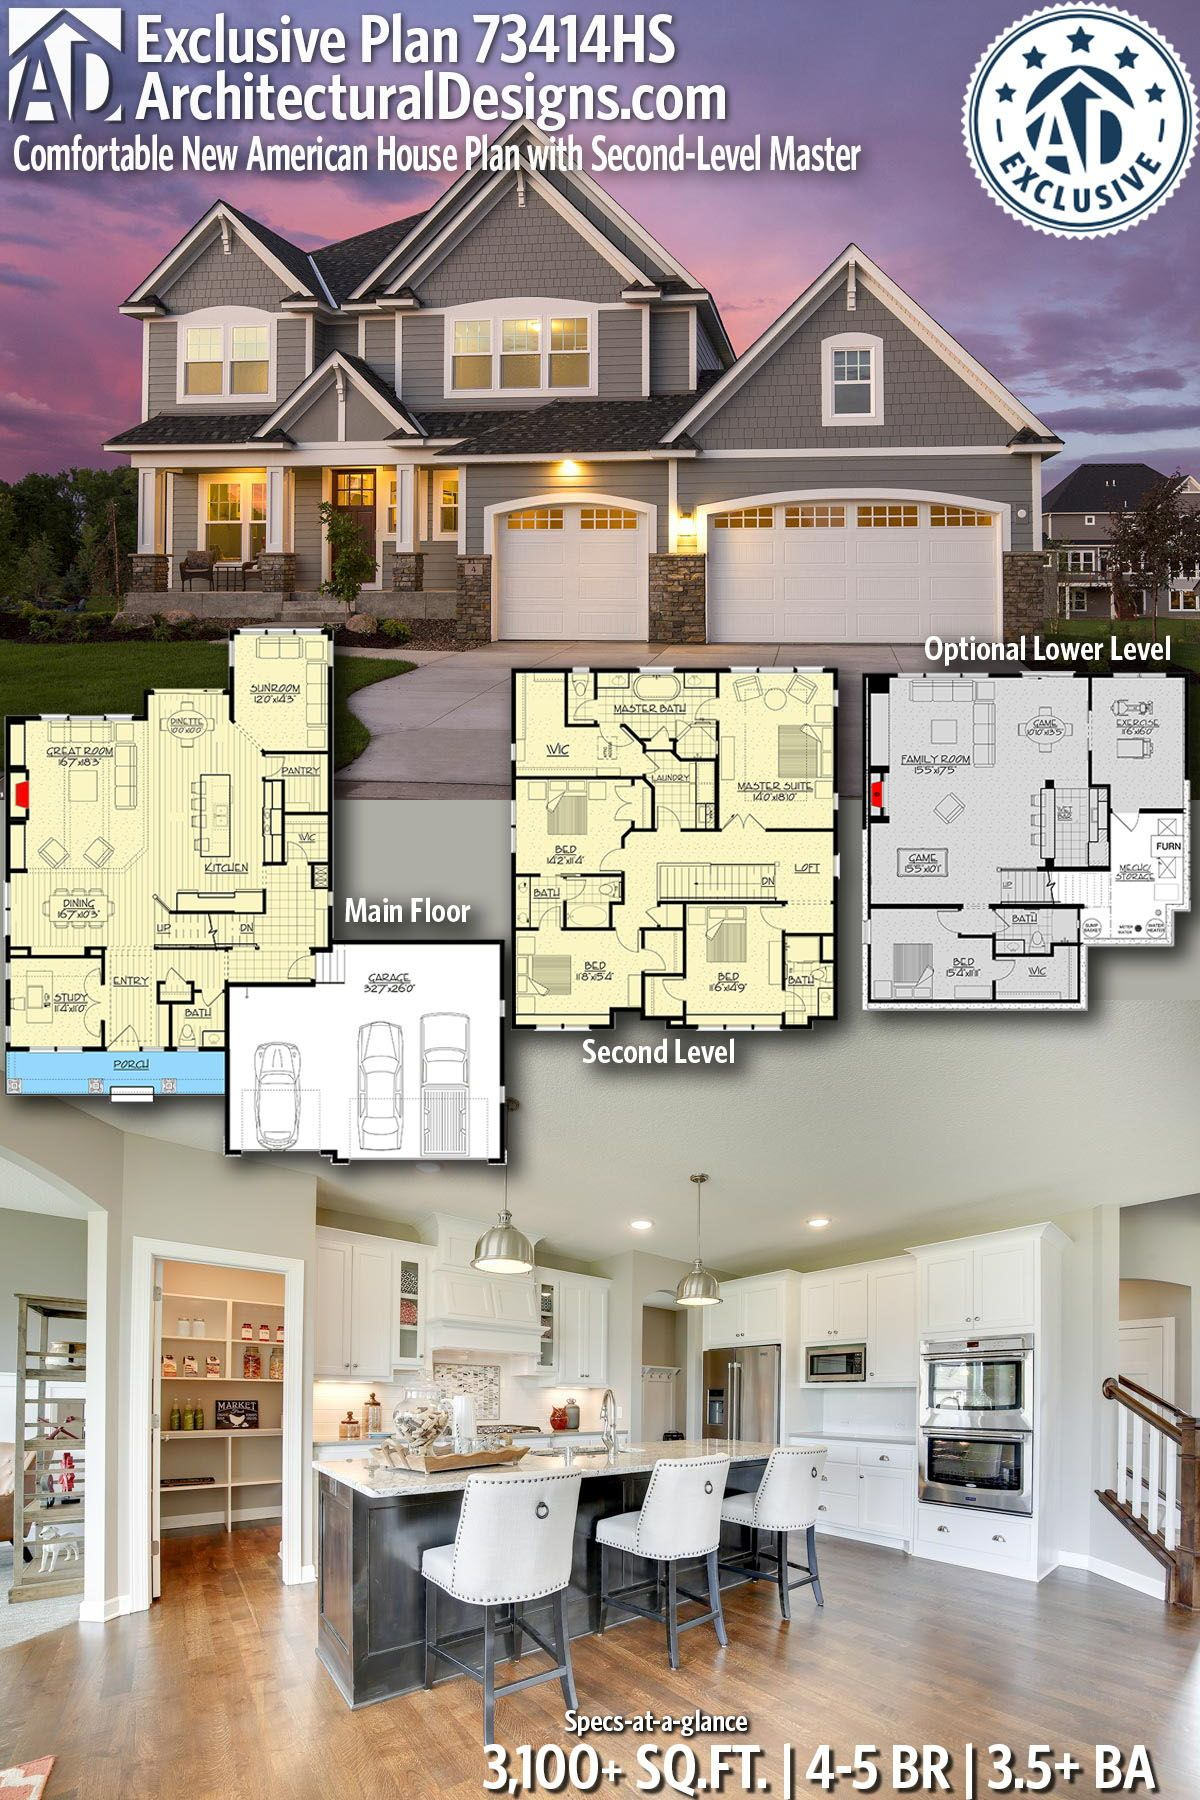 Plan 73414hs Comfortable New American House Plan With Second Level Master Sims House Plans House Plans House Blueprints